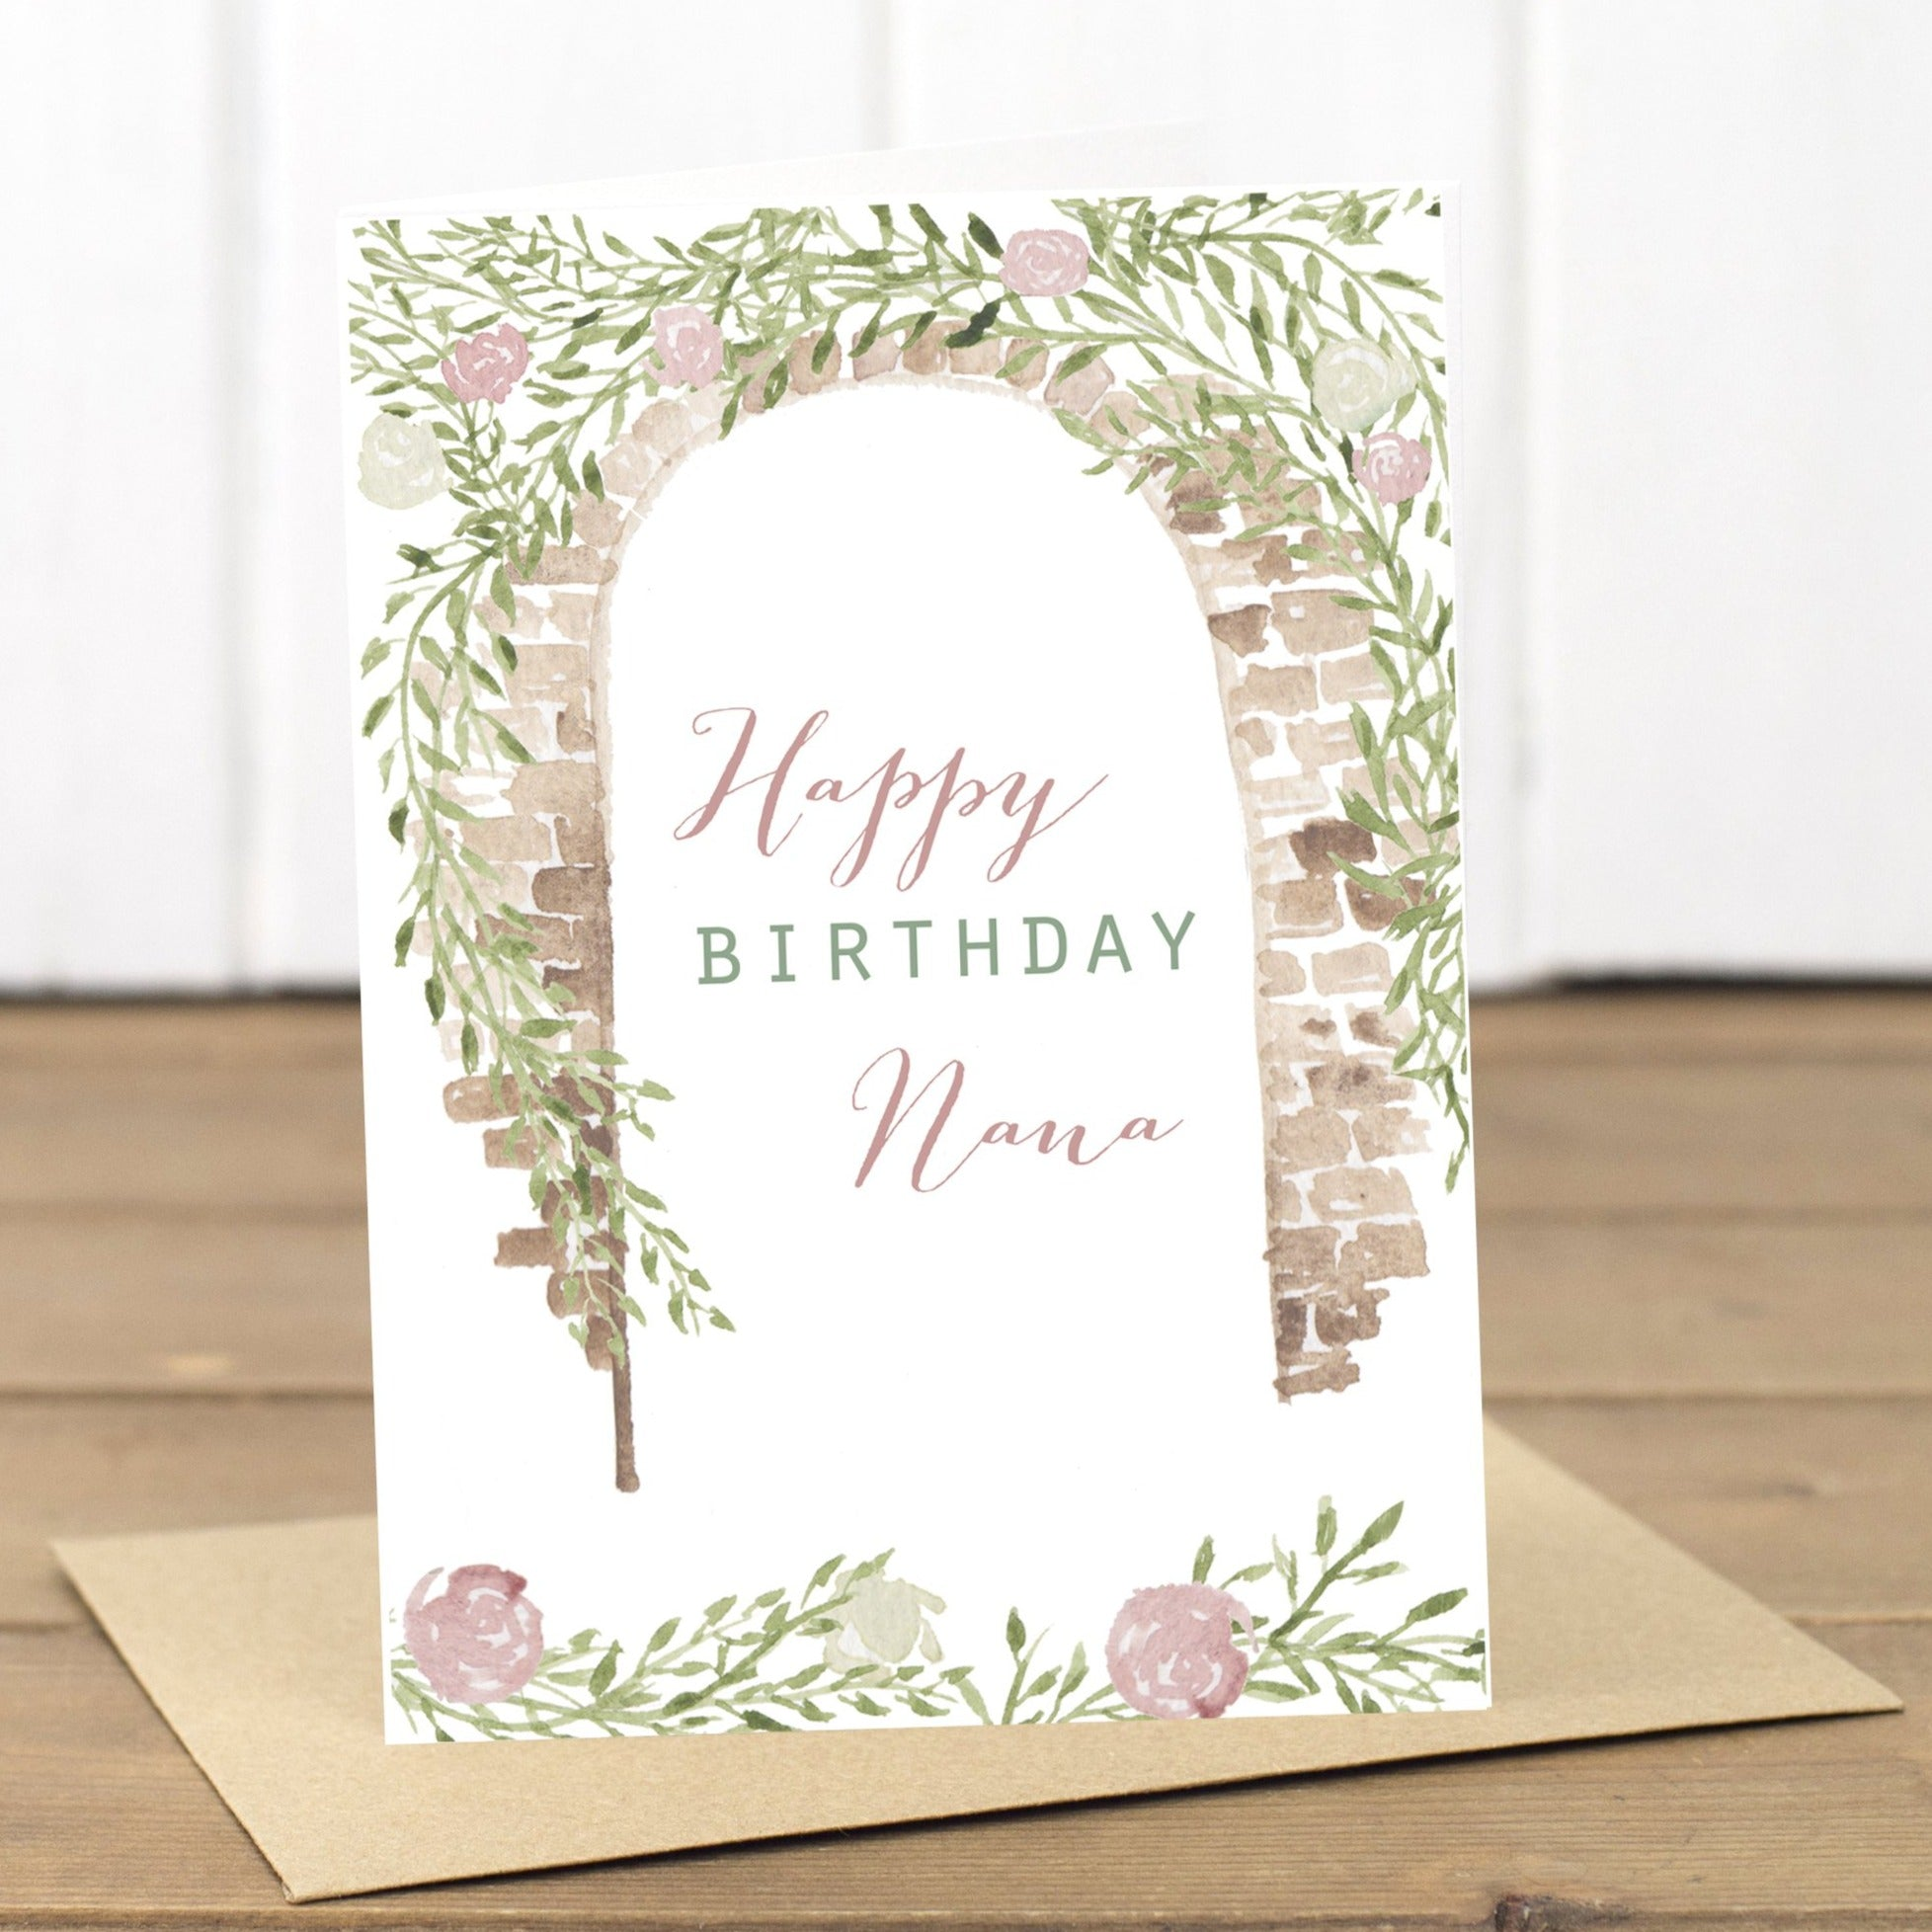 Nana Happy Birthday Floral Archway Card - Yellowstone Art Boutique